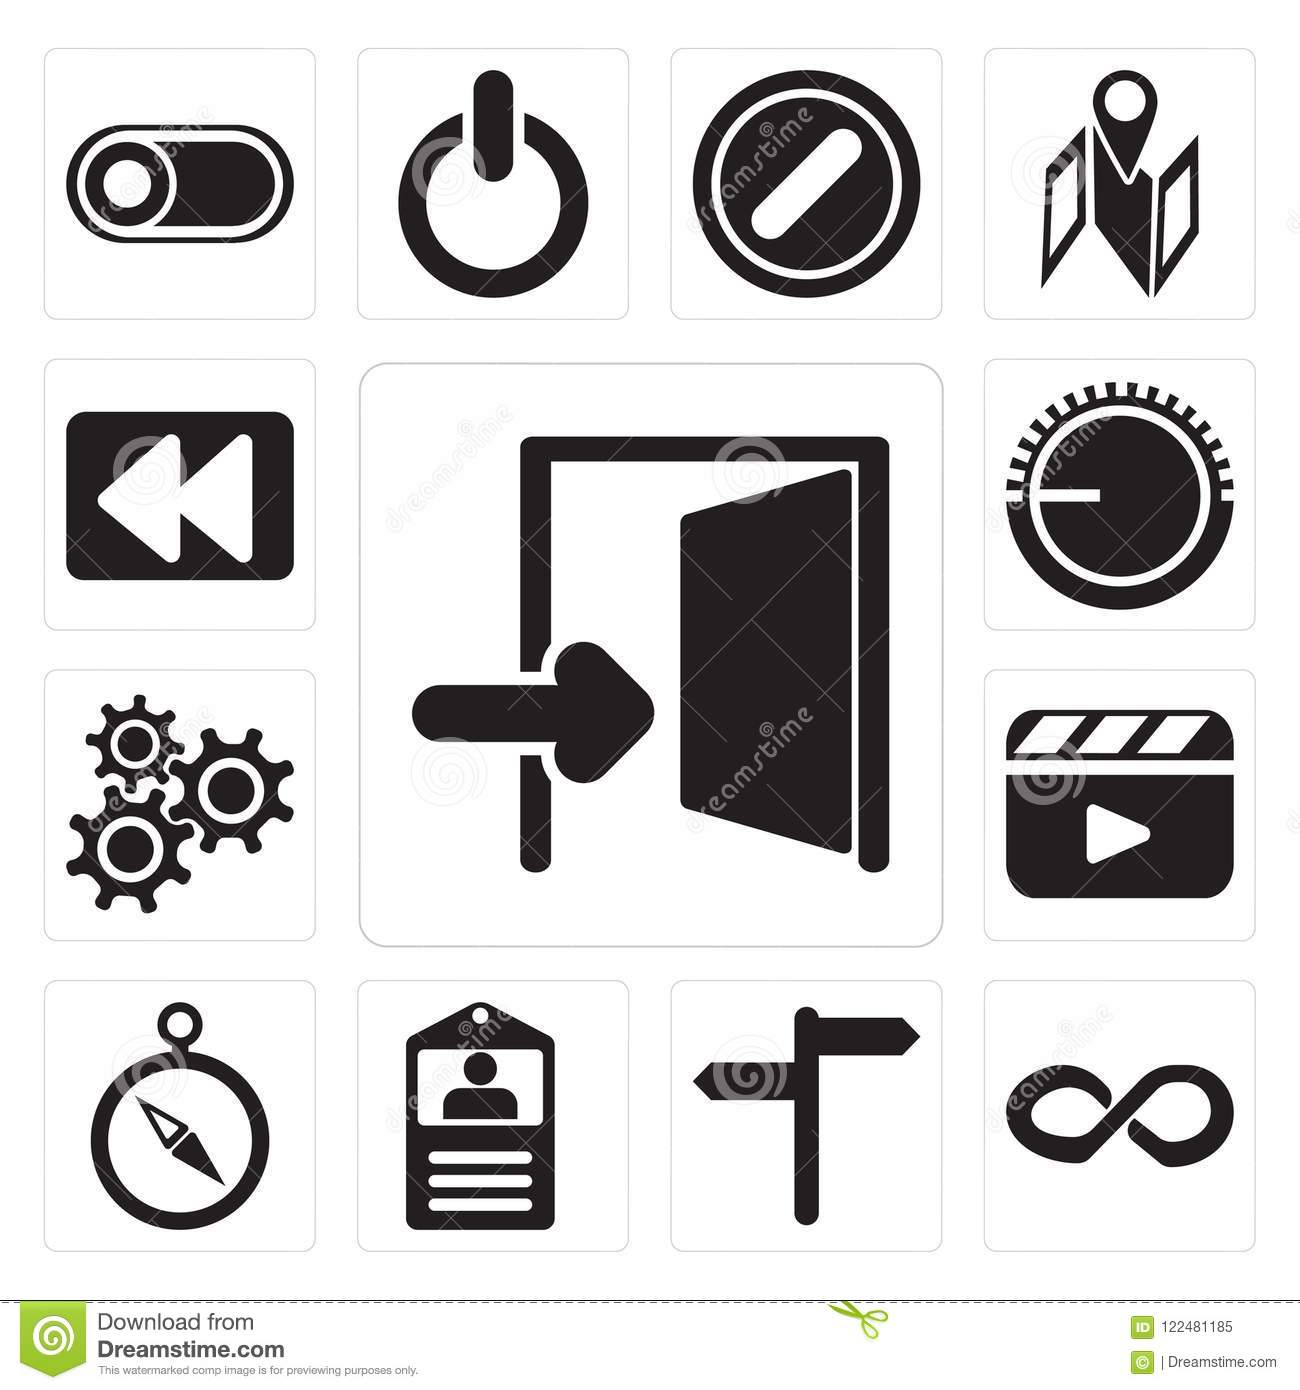 Set Of Exit, Infinity, , Id Card, Compass, Video Player, Setting